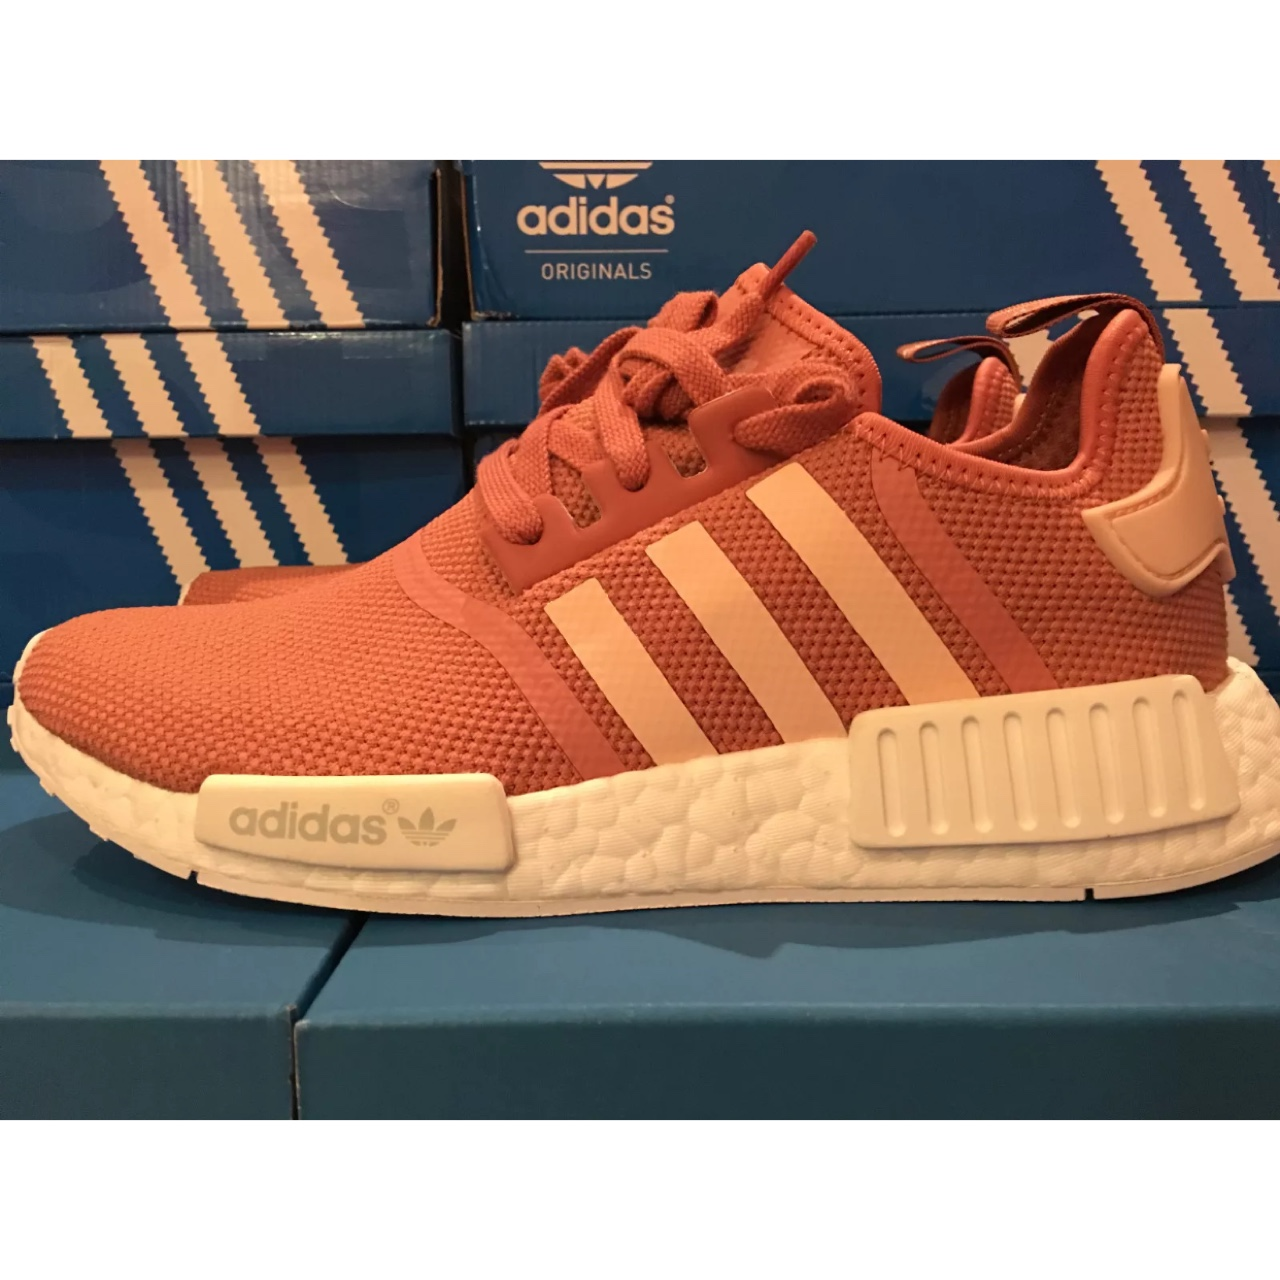 premium selection 916d4 5fd8e NMD R1 W RAW PINK / VAPOR PINK / FTWR WHITE S76006 ...